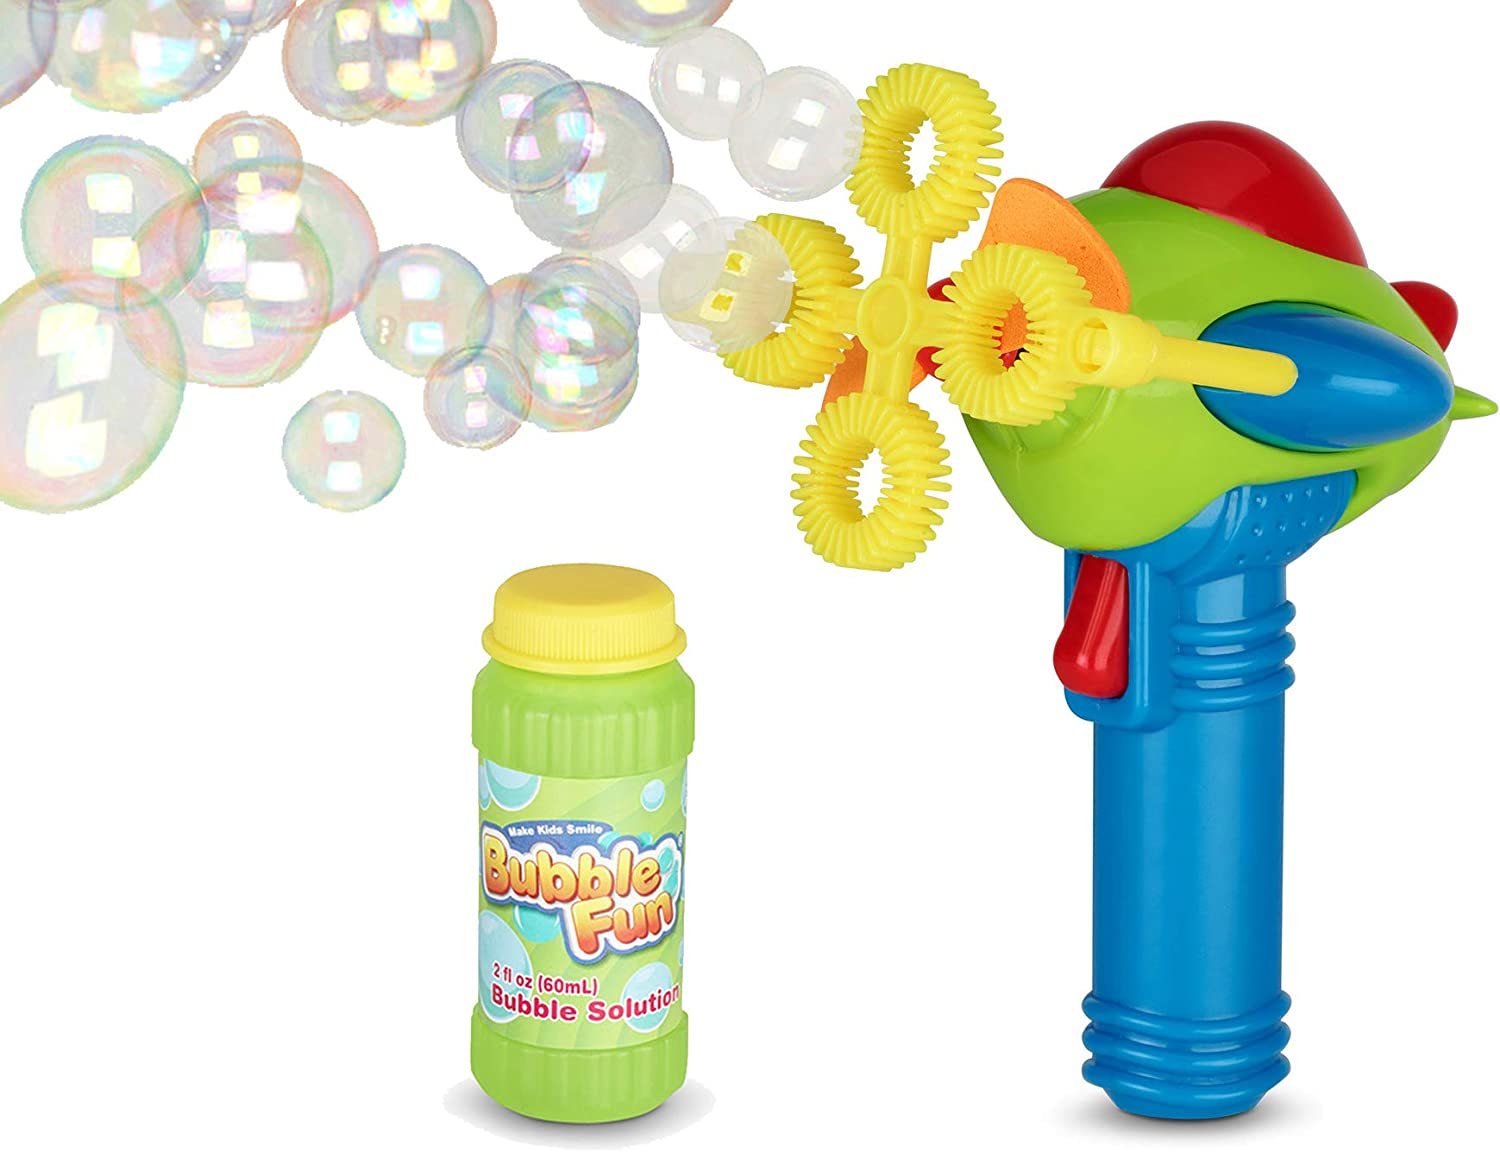 MINI Marshmallow Blower Shooter Blows  UP TO 20 FEET Blaster Gun SAFE INDOOR FUN